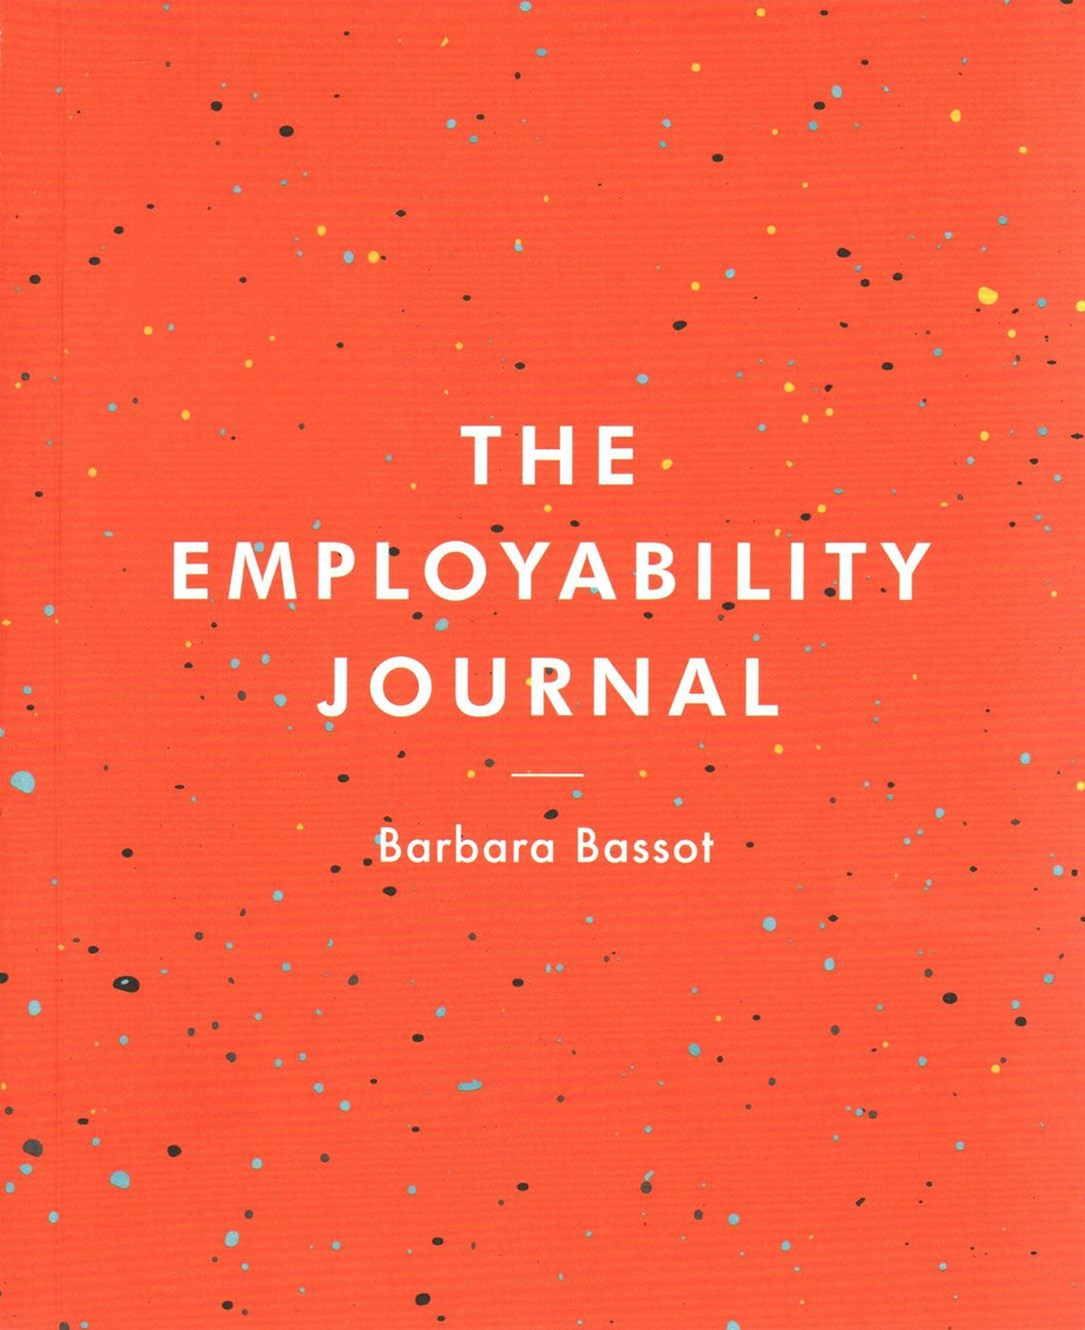 Employability Journal